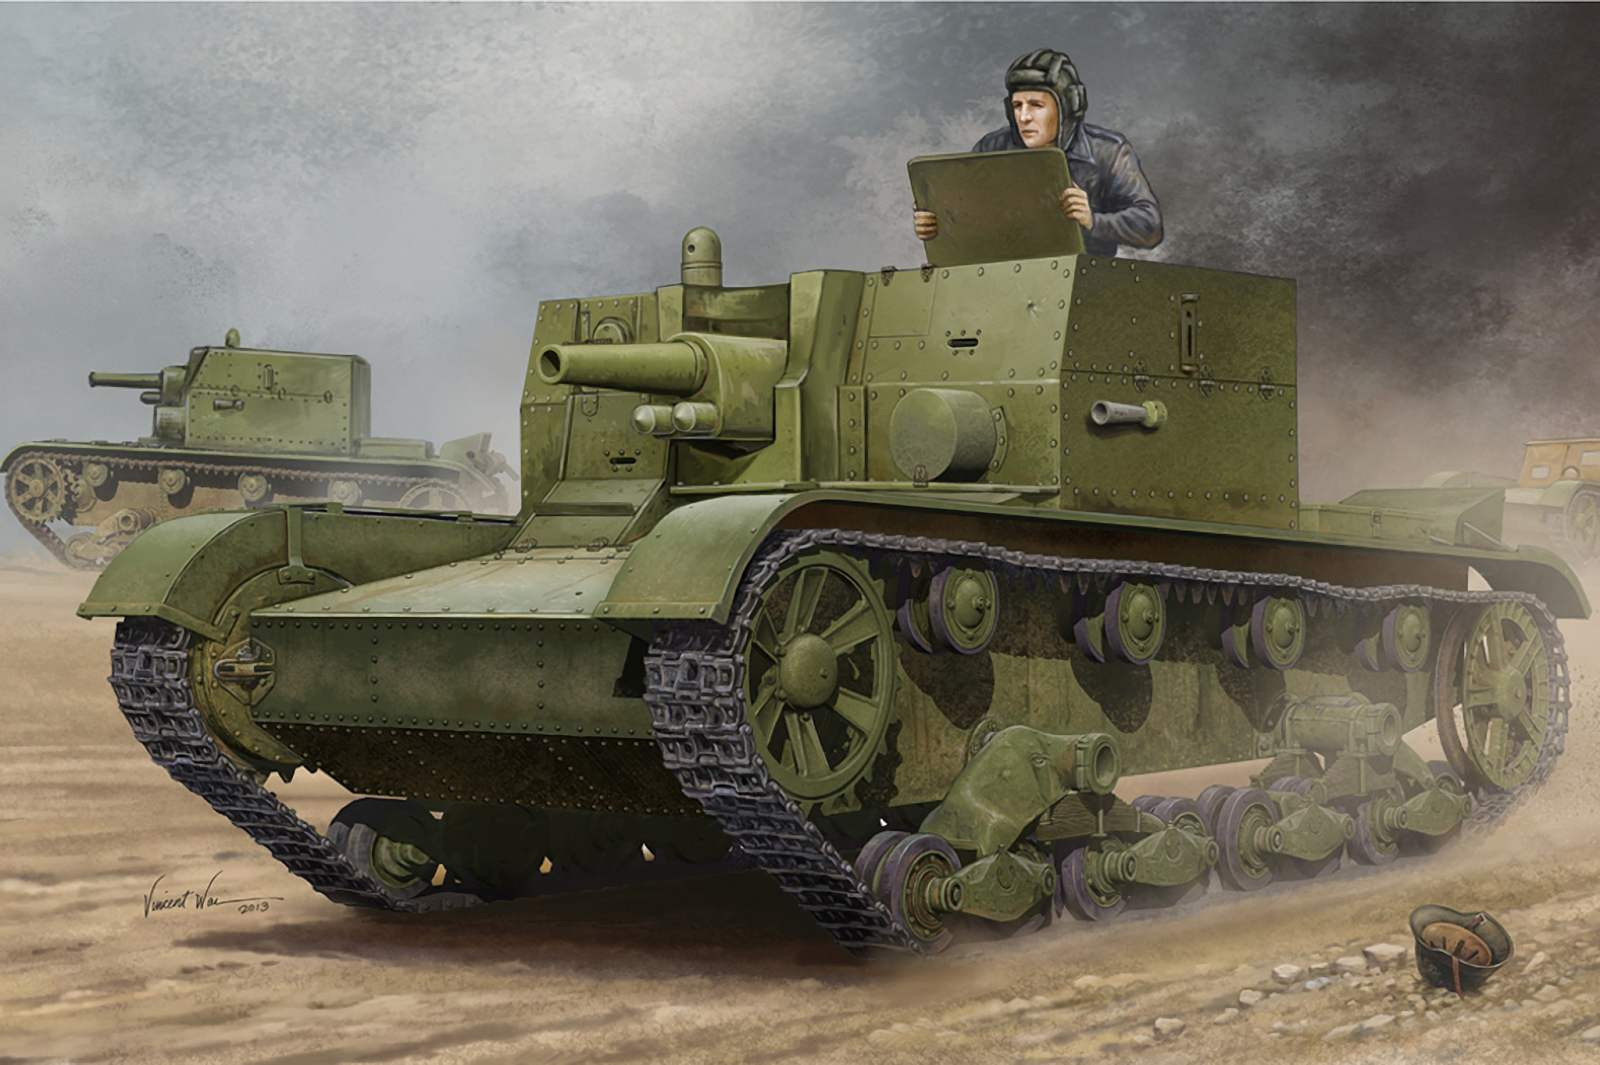 ARTILLERY TANK FOR THE RED ARMY